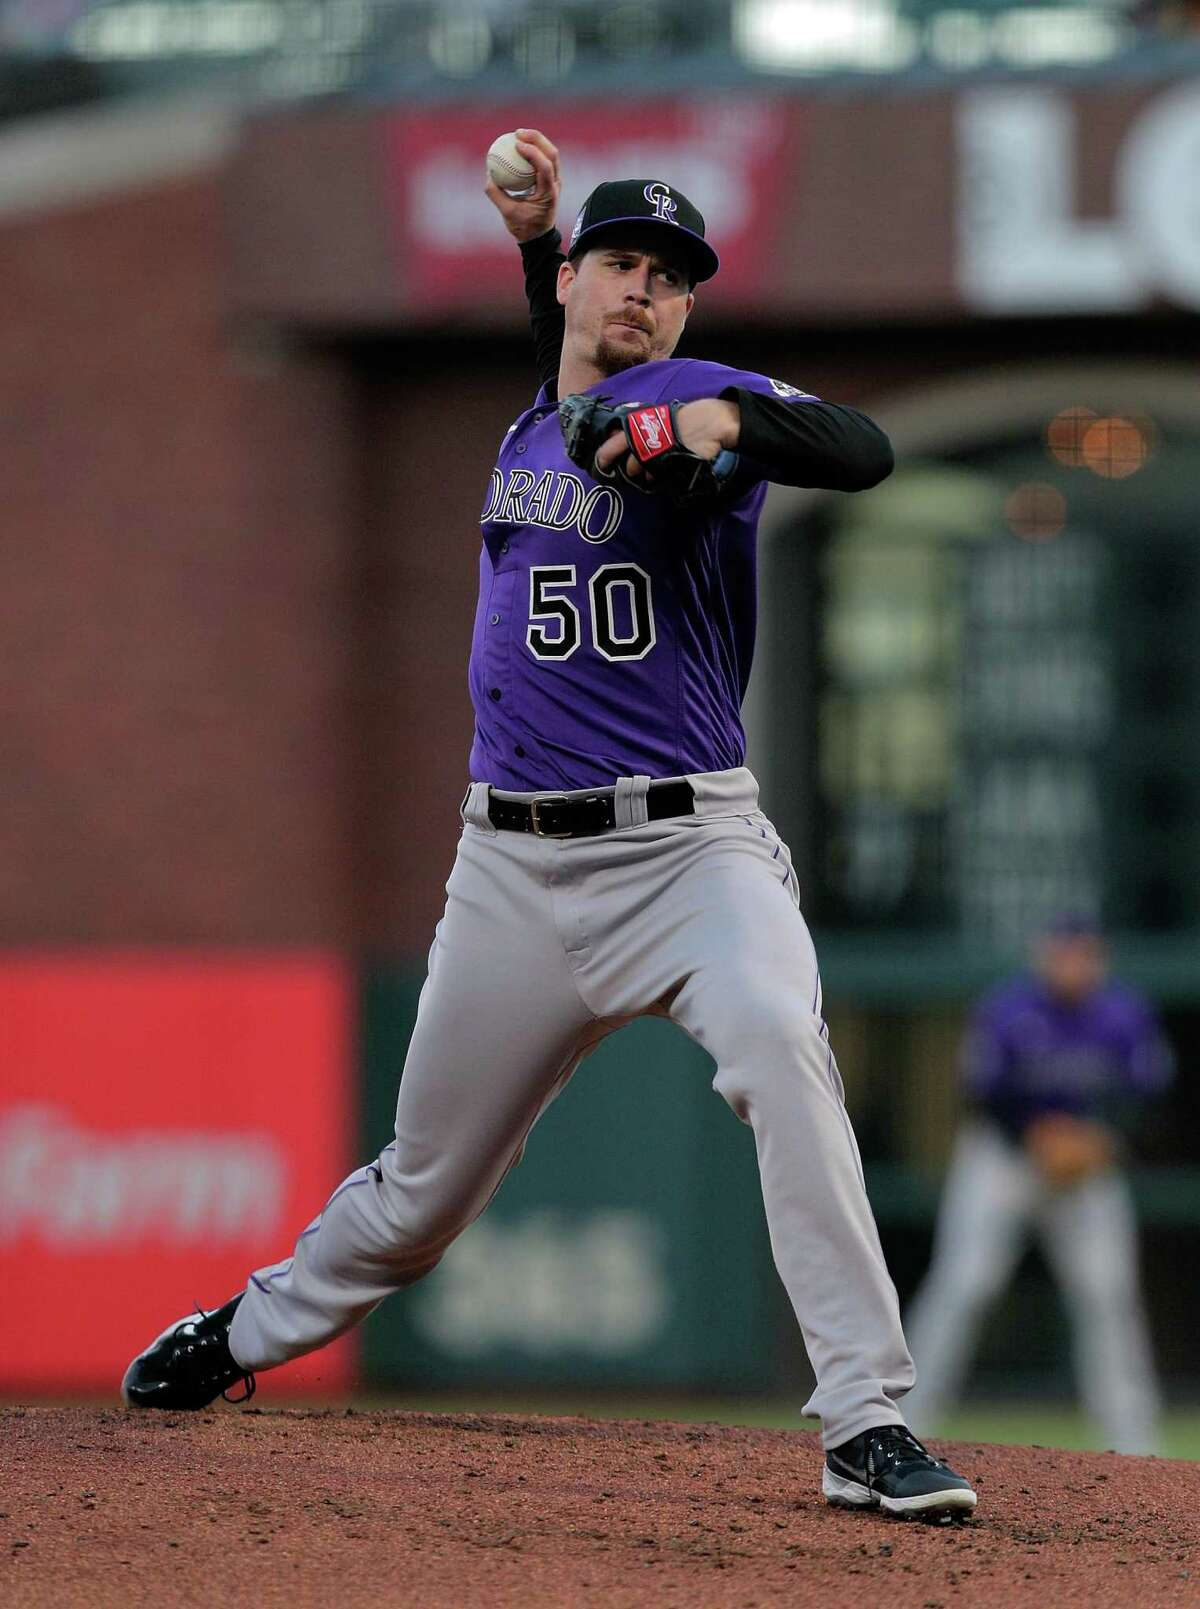 Rockies pitcher Chi Chi Gonzalez (50) pitches in the second inning as the San Francisco Giants played the Colorado Rockies at Oracle Park in San Francisco Calif., on Tuesday, April 27, 2021.